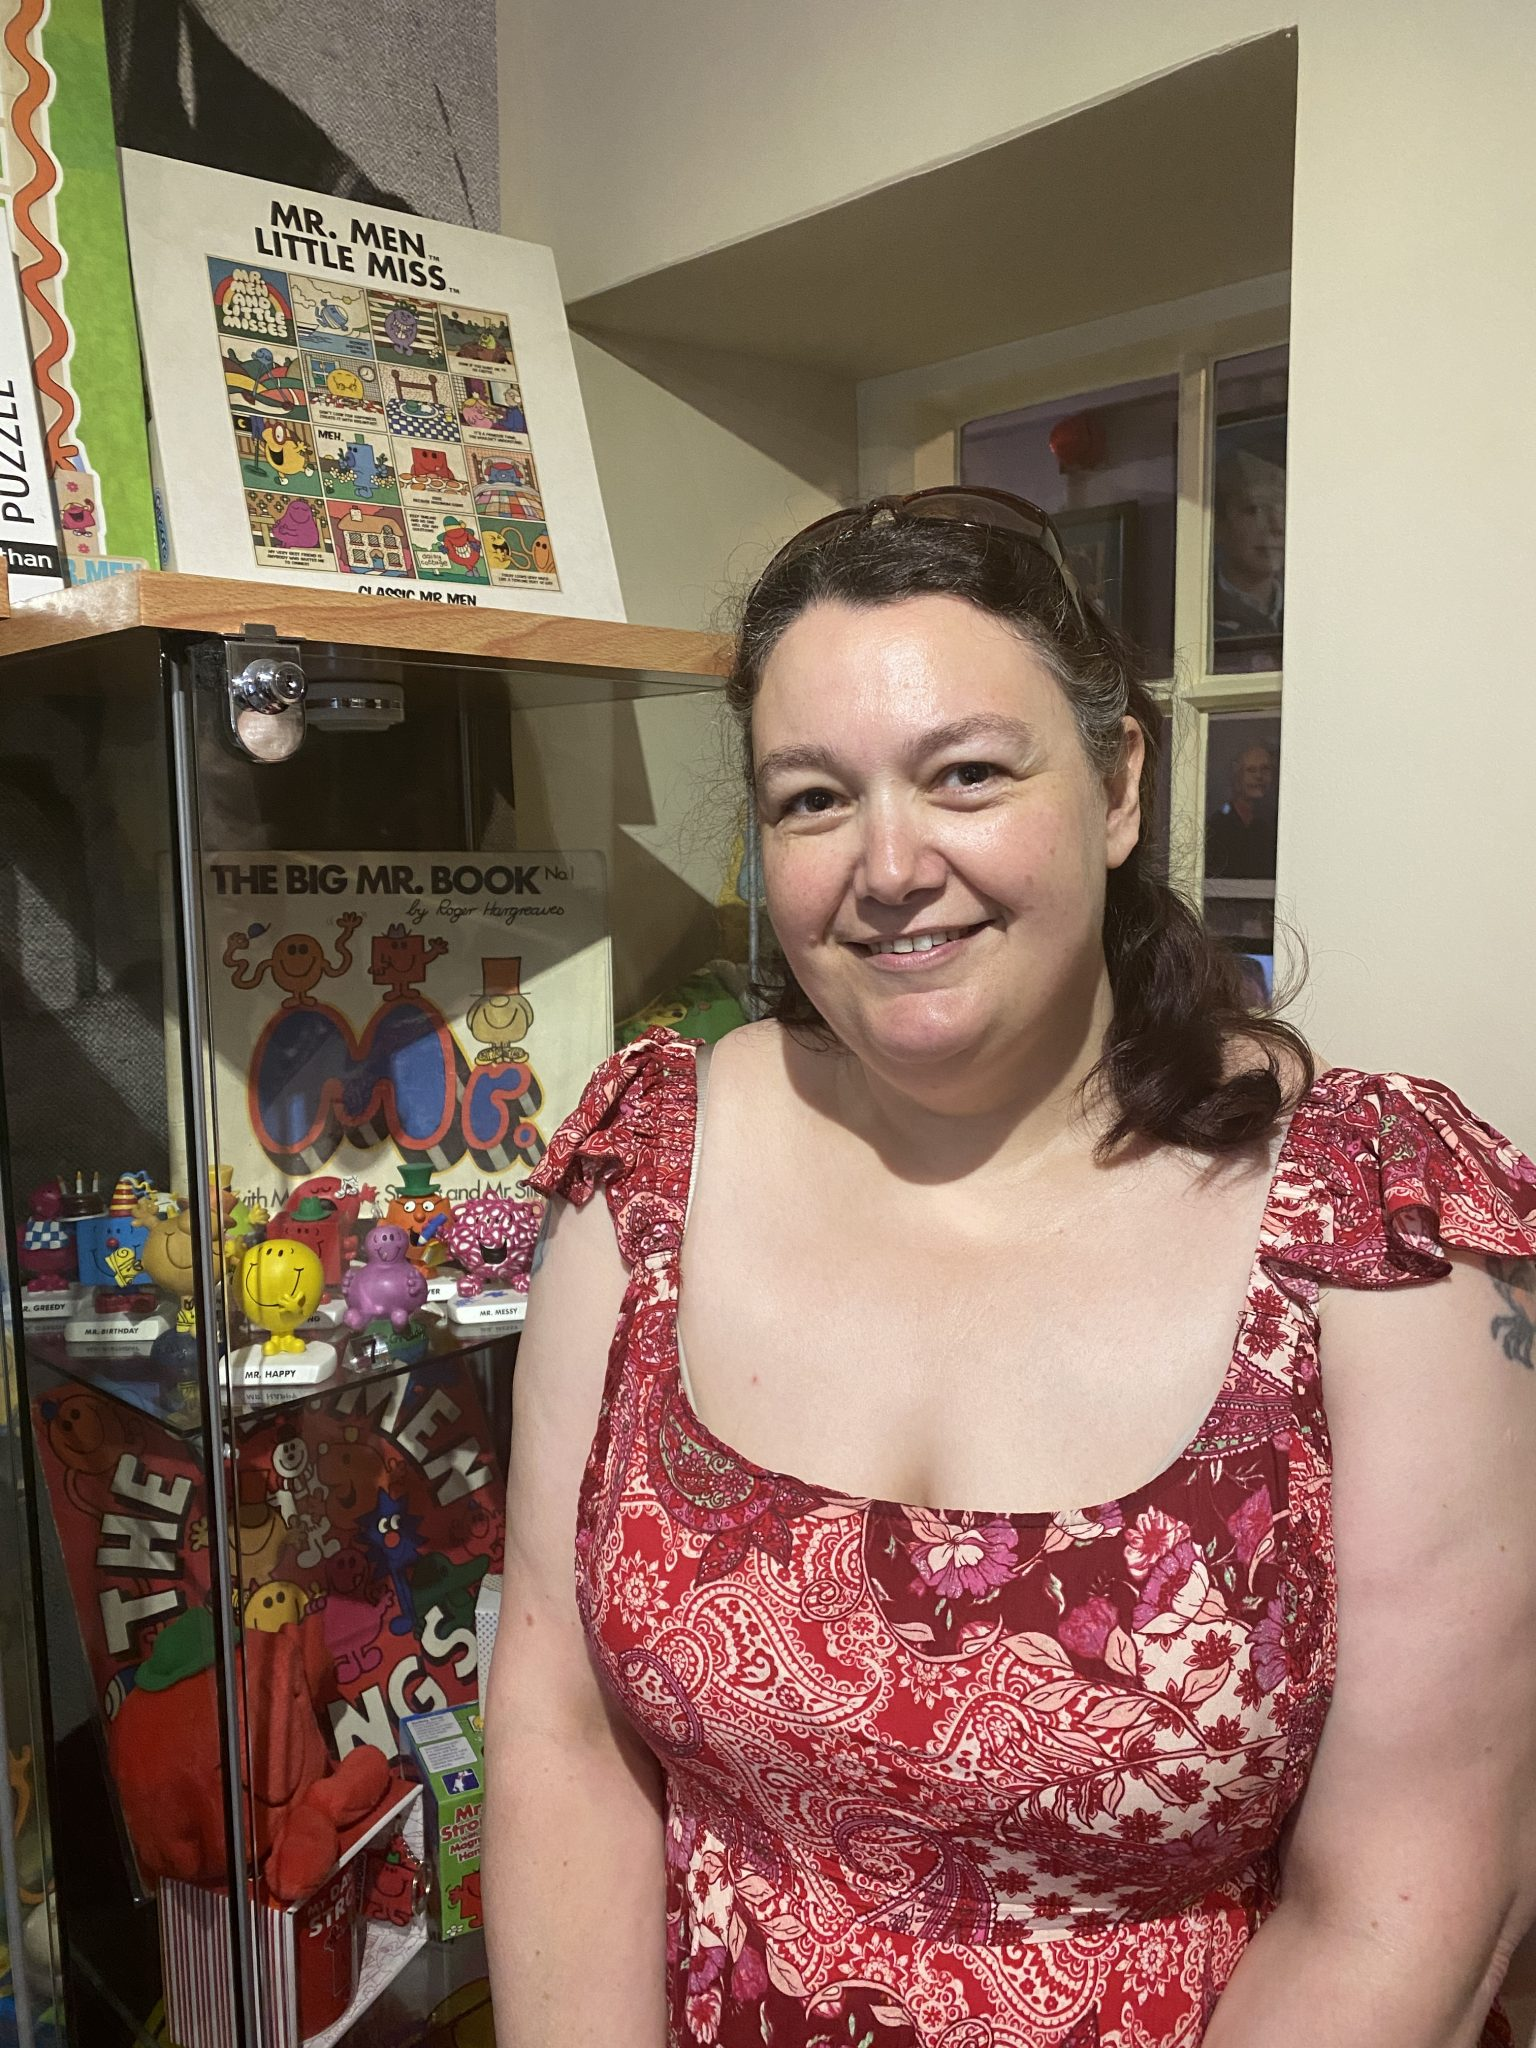 Photo of a person standing in front of a glass cabinet full of Mr Men figures.